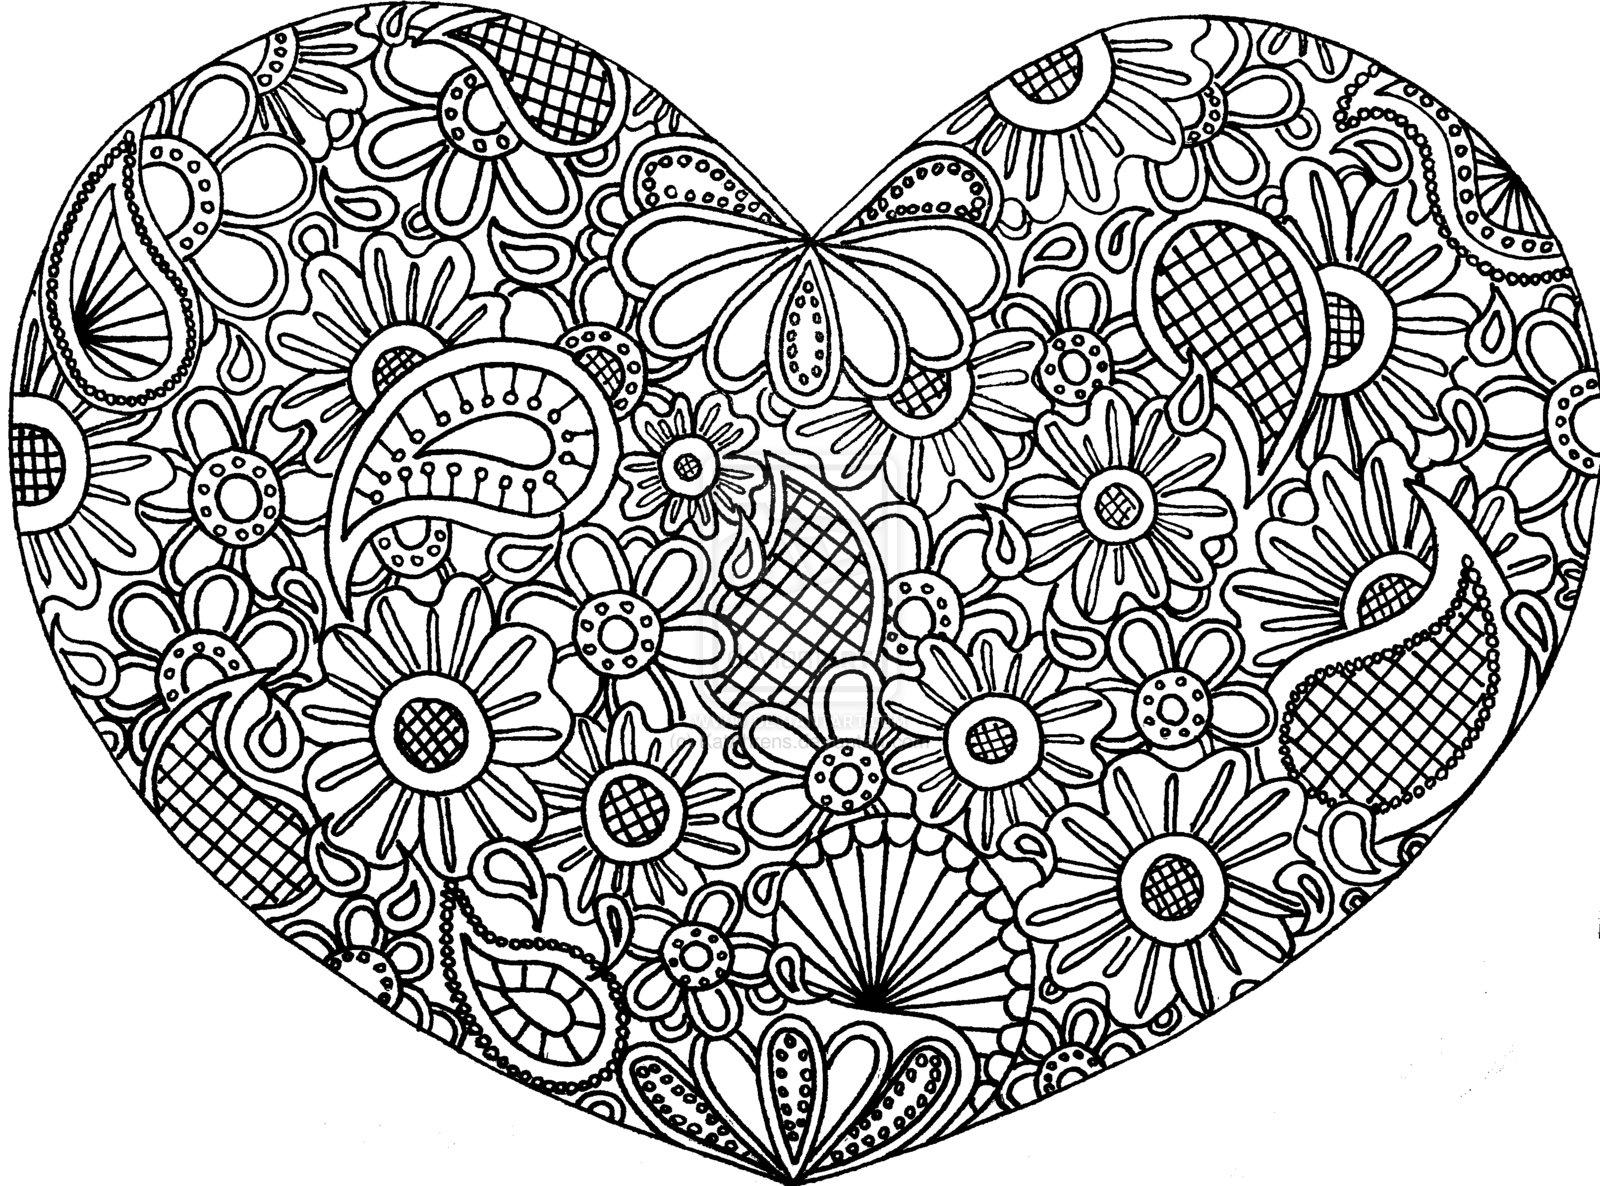 Zen doodle colour - Colored Zentangles Hearts Free Doodle Art Coloring Pages Coloring Pages Pictures Imagixs